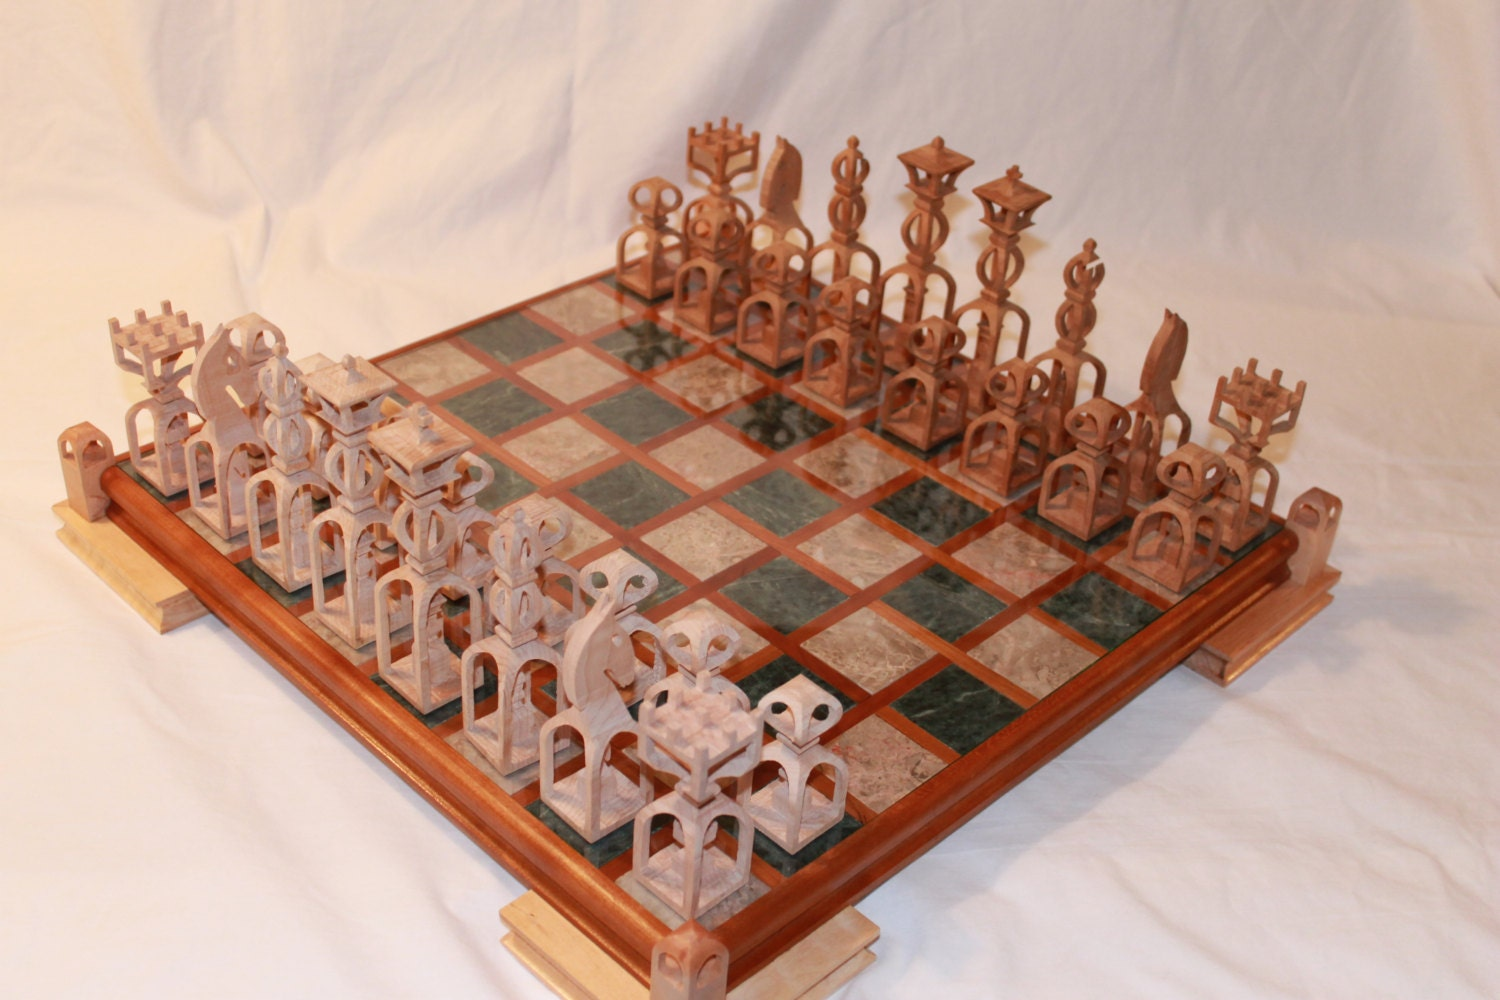 Scroll Saw Pattern: Advanced Chess Set from ClaytonsPatterns on Etsy Studio